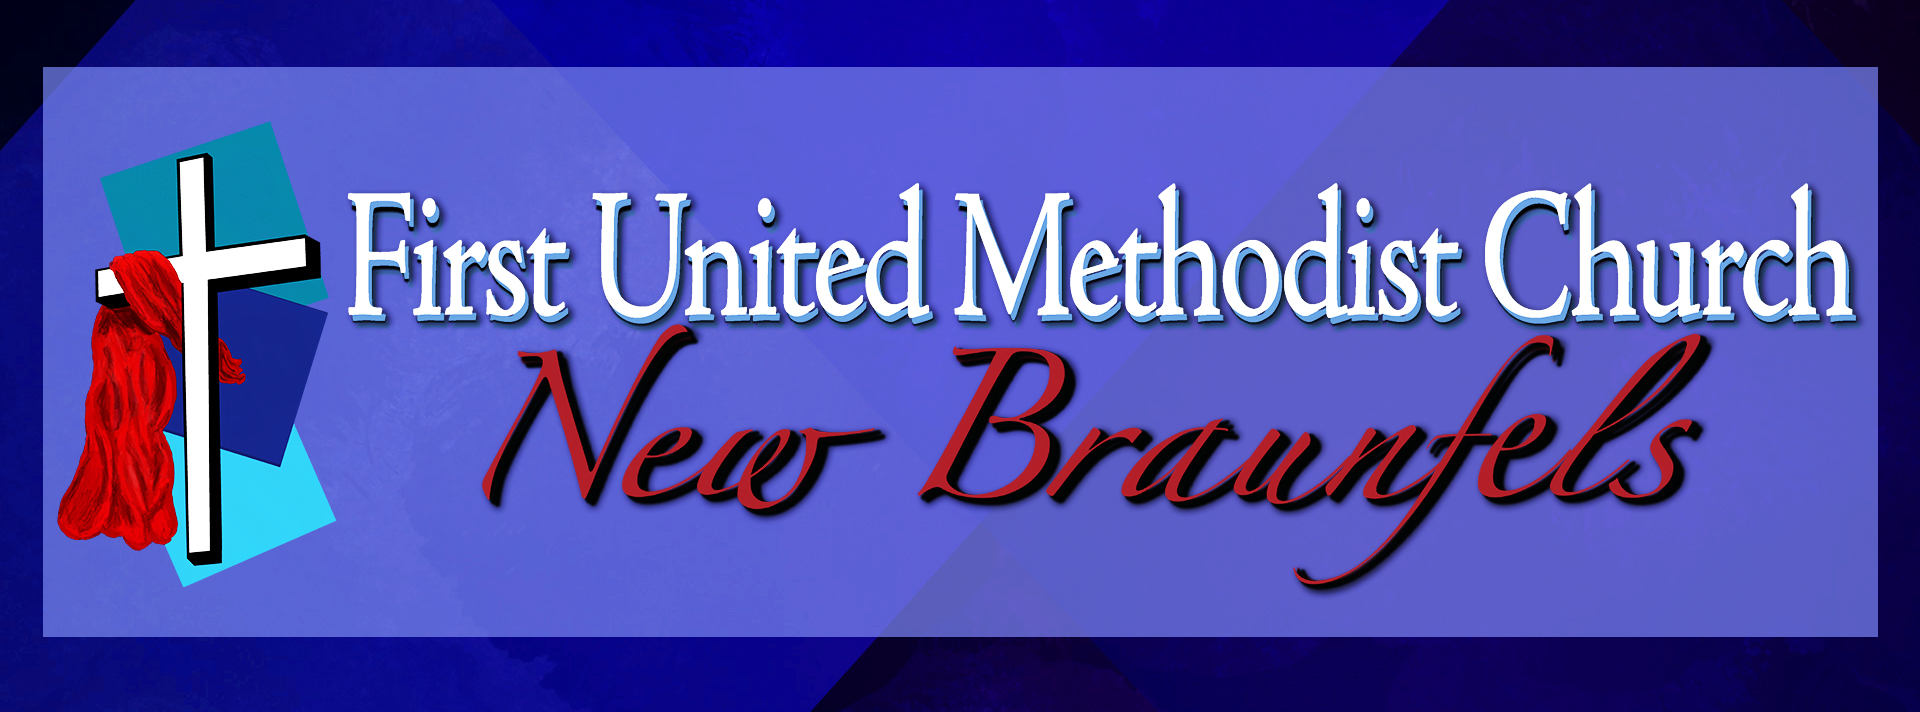 Welcome to First United Methodist Church New Braunfels